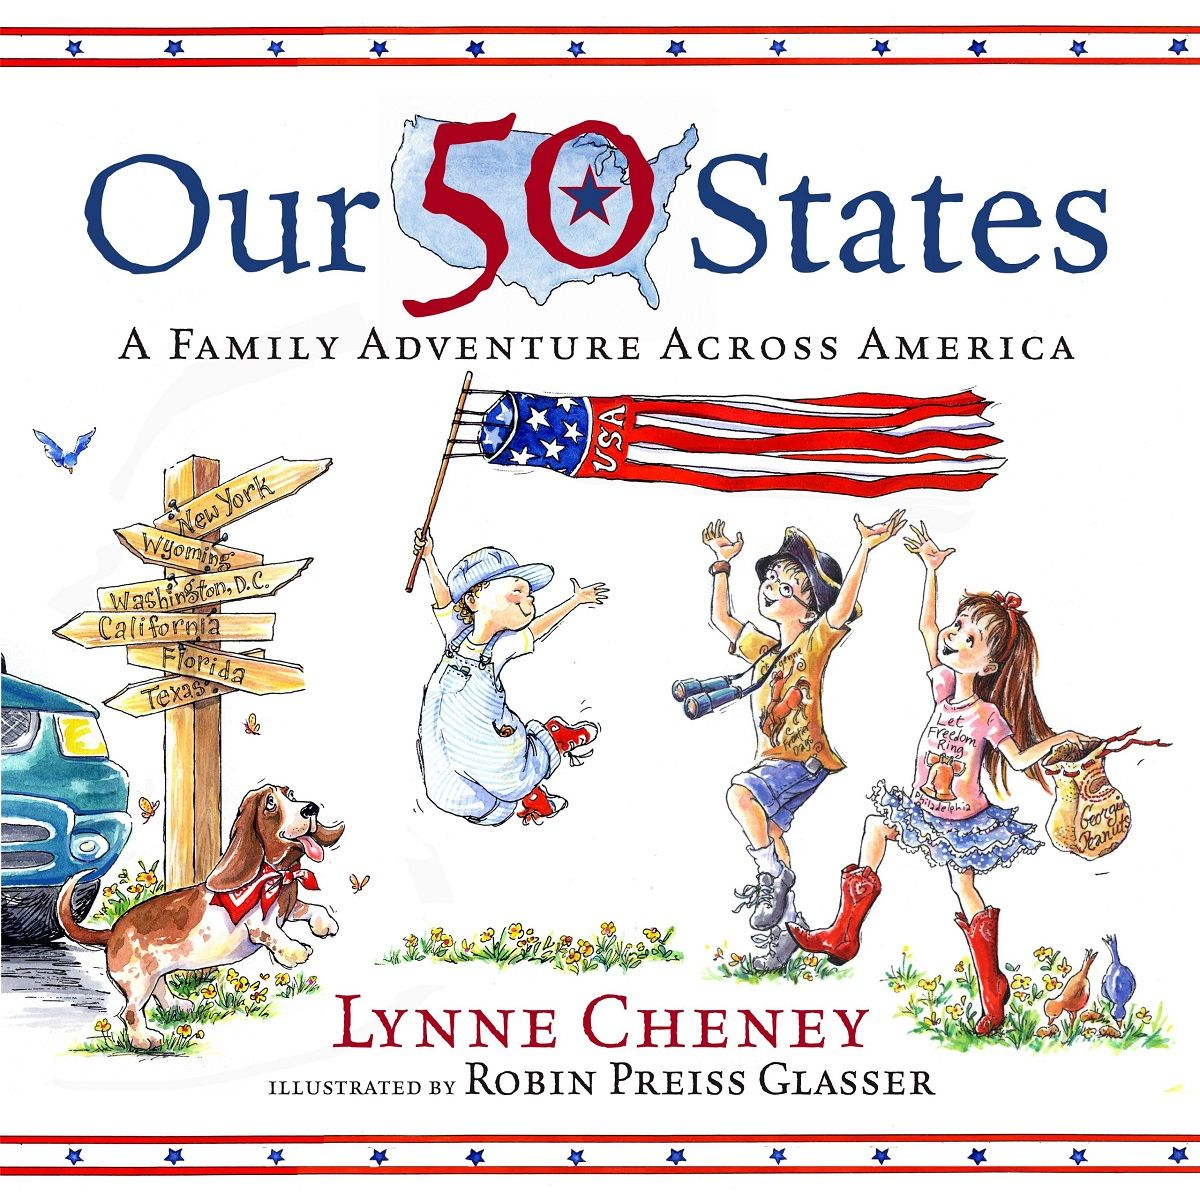 Our 50 States cover